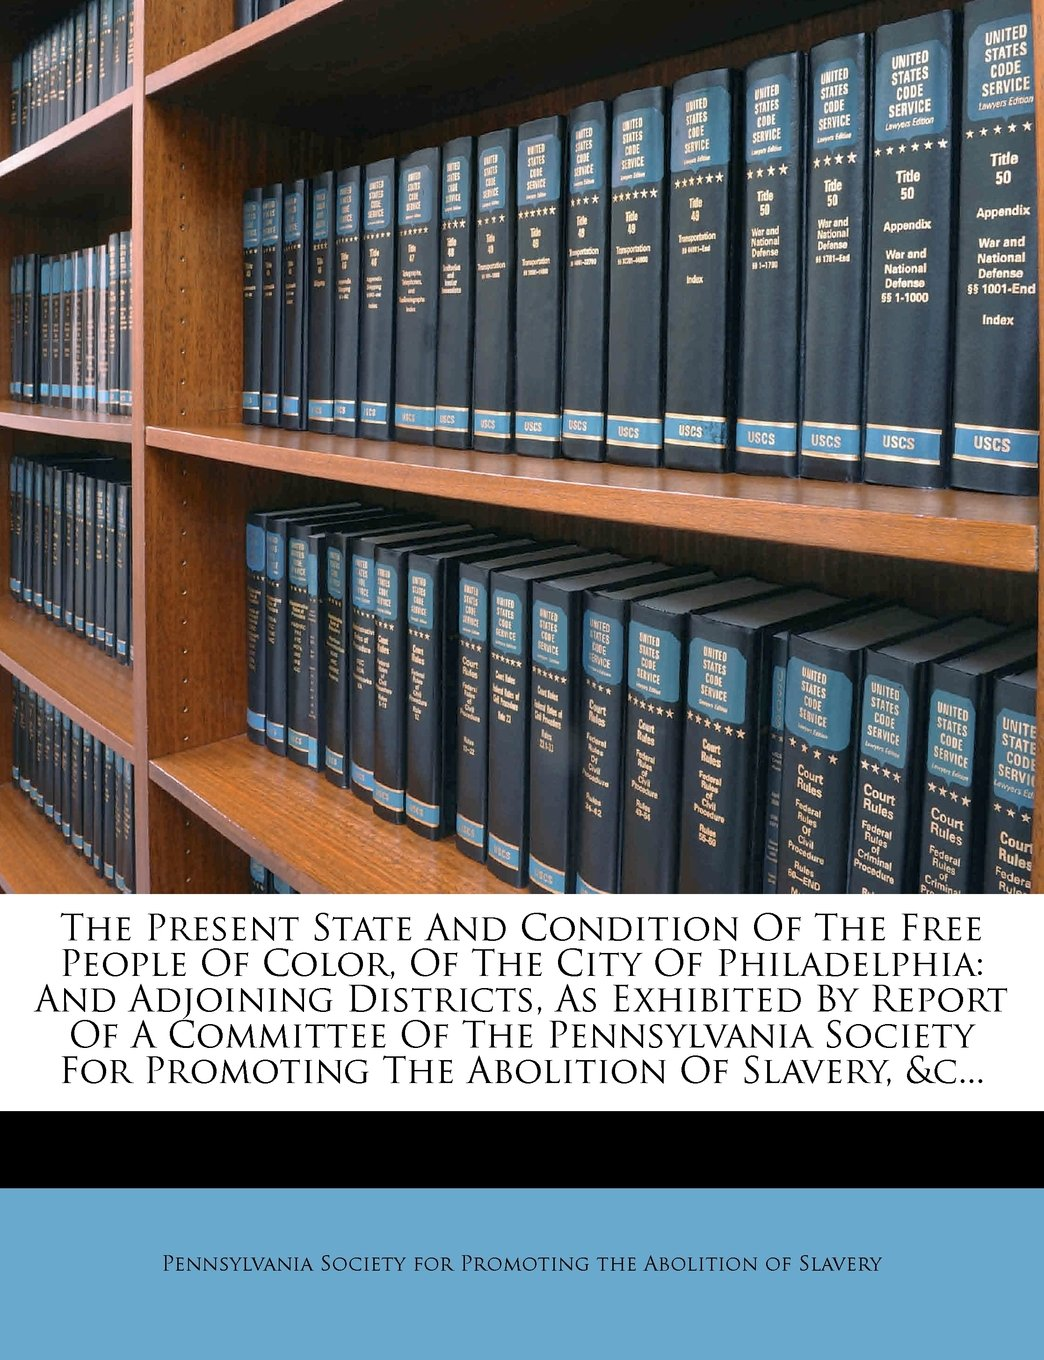 The Present State And Condition Of The Free People Of Color, Of The City Of Philadelphia: And Adjoining Districts, As Exhibited By Report Of A ... For Promoting The Abolition Of Slavery, &c... ebook